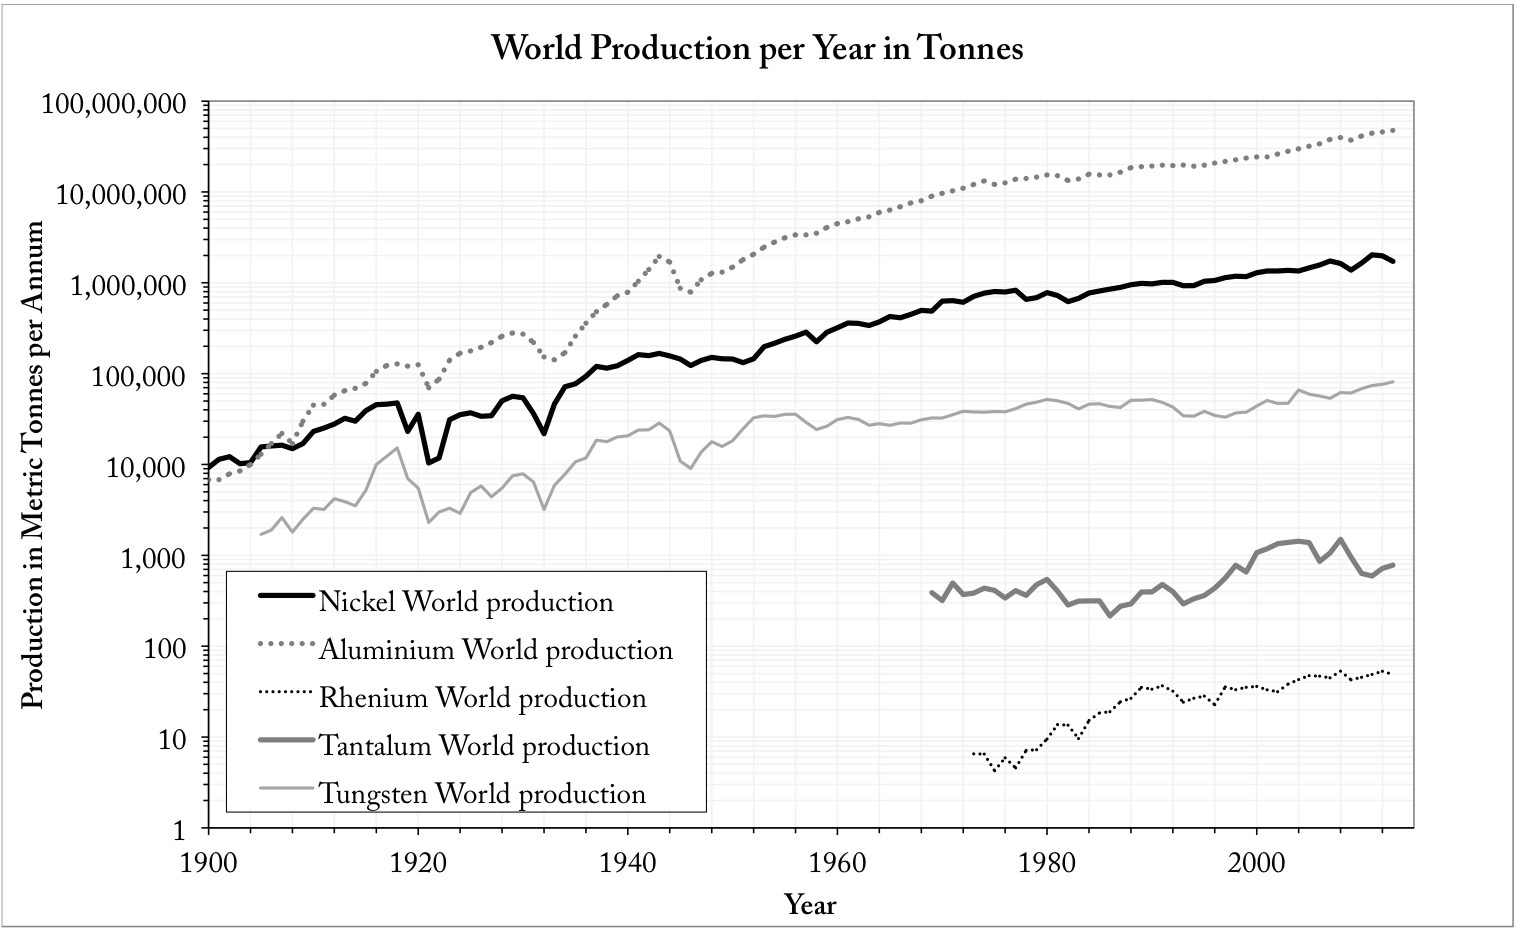 hight resolution of world production of key alloying elements used in jet engine blades in tonnes per year over